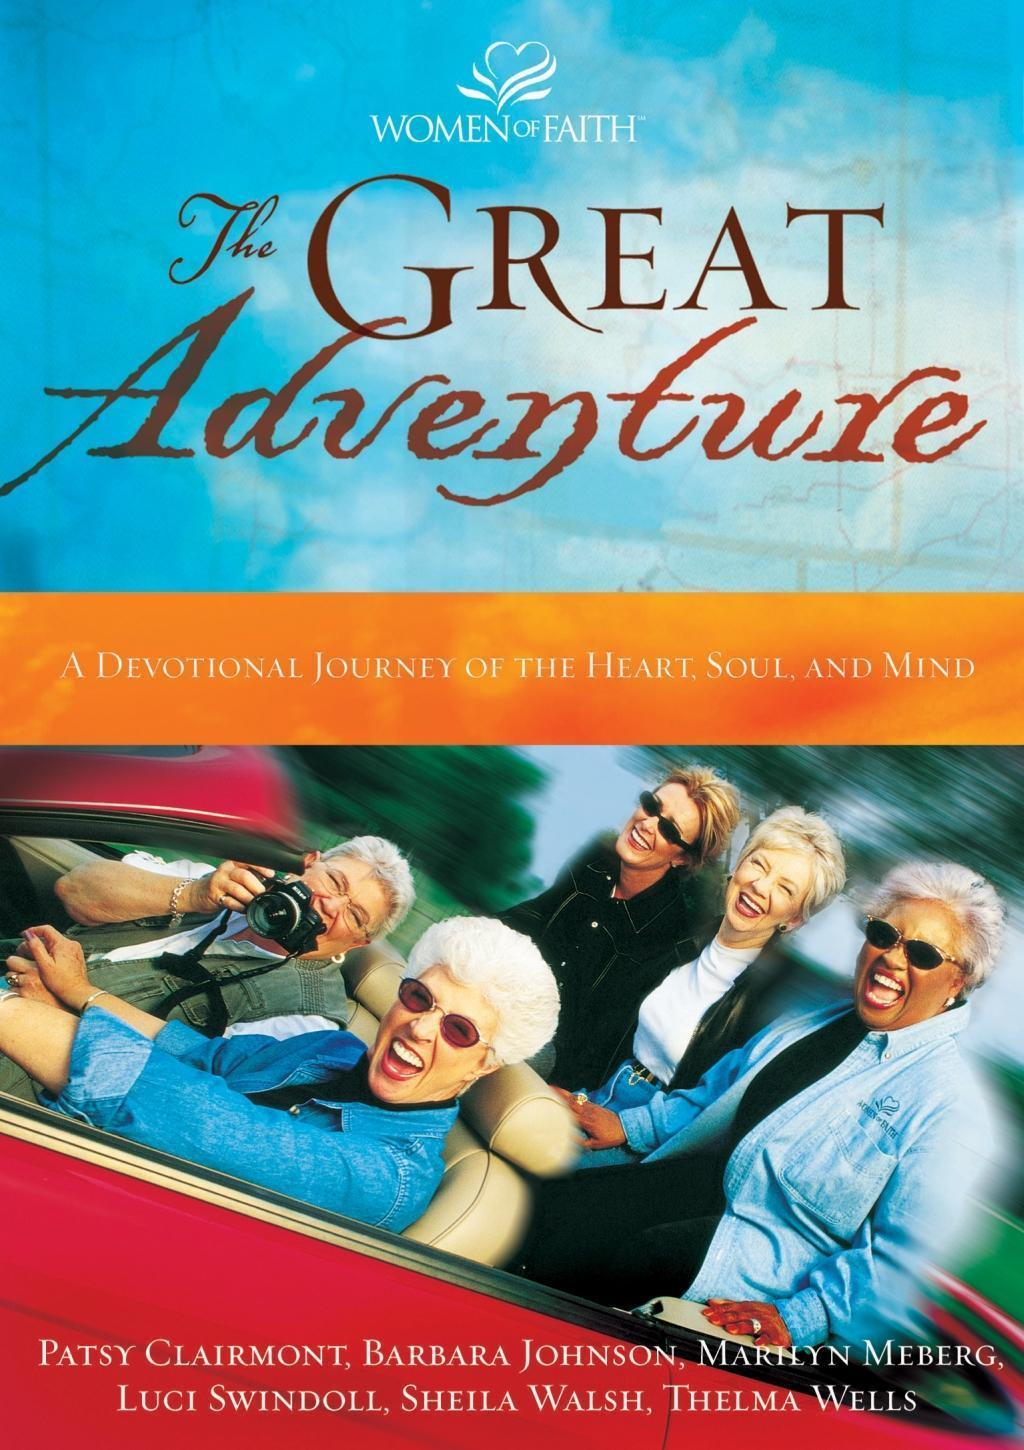 The Great Adventure 2003 Devotional